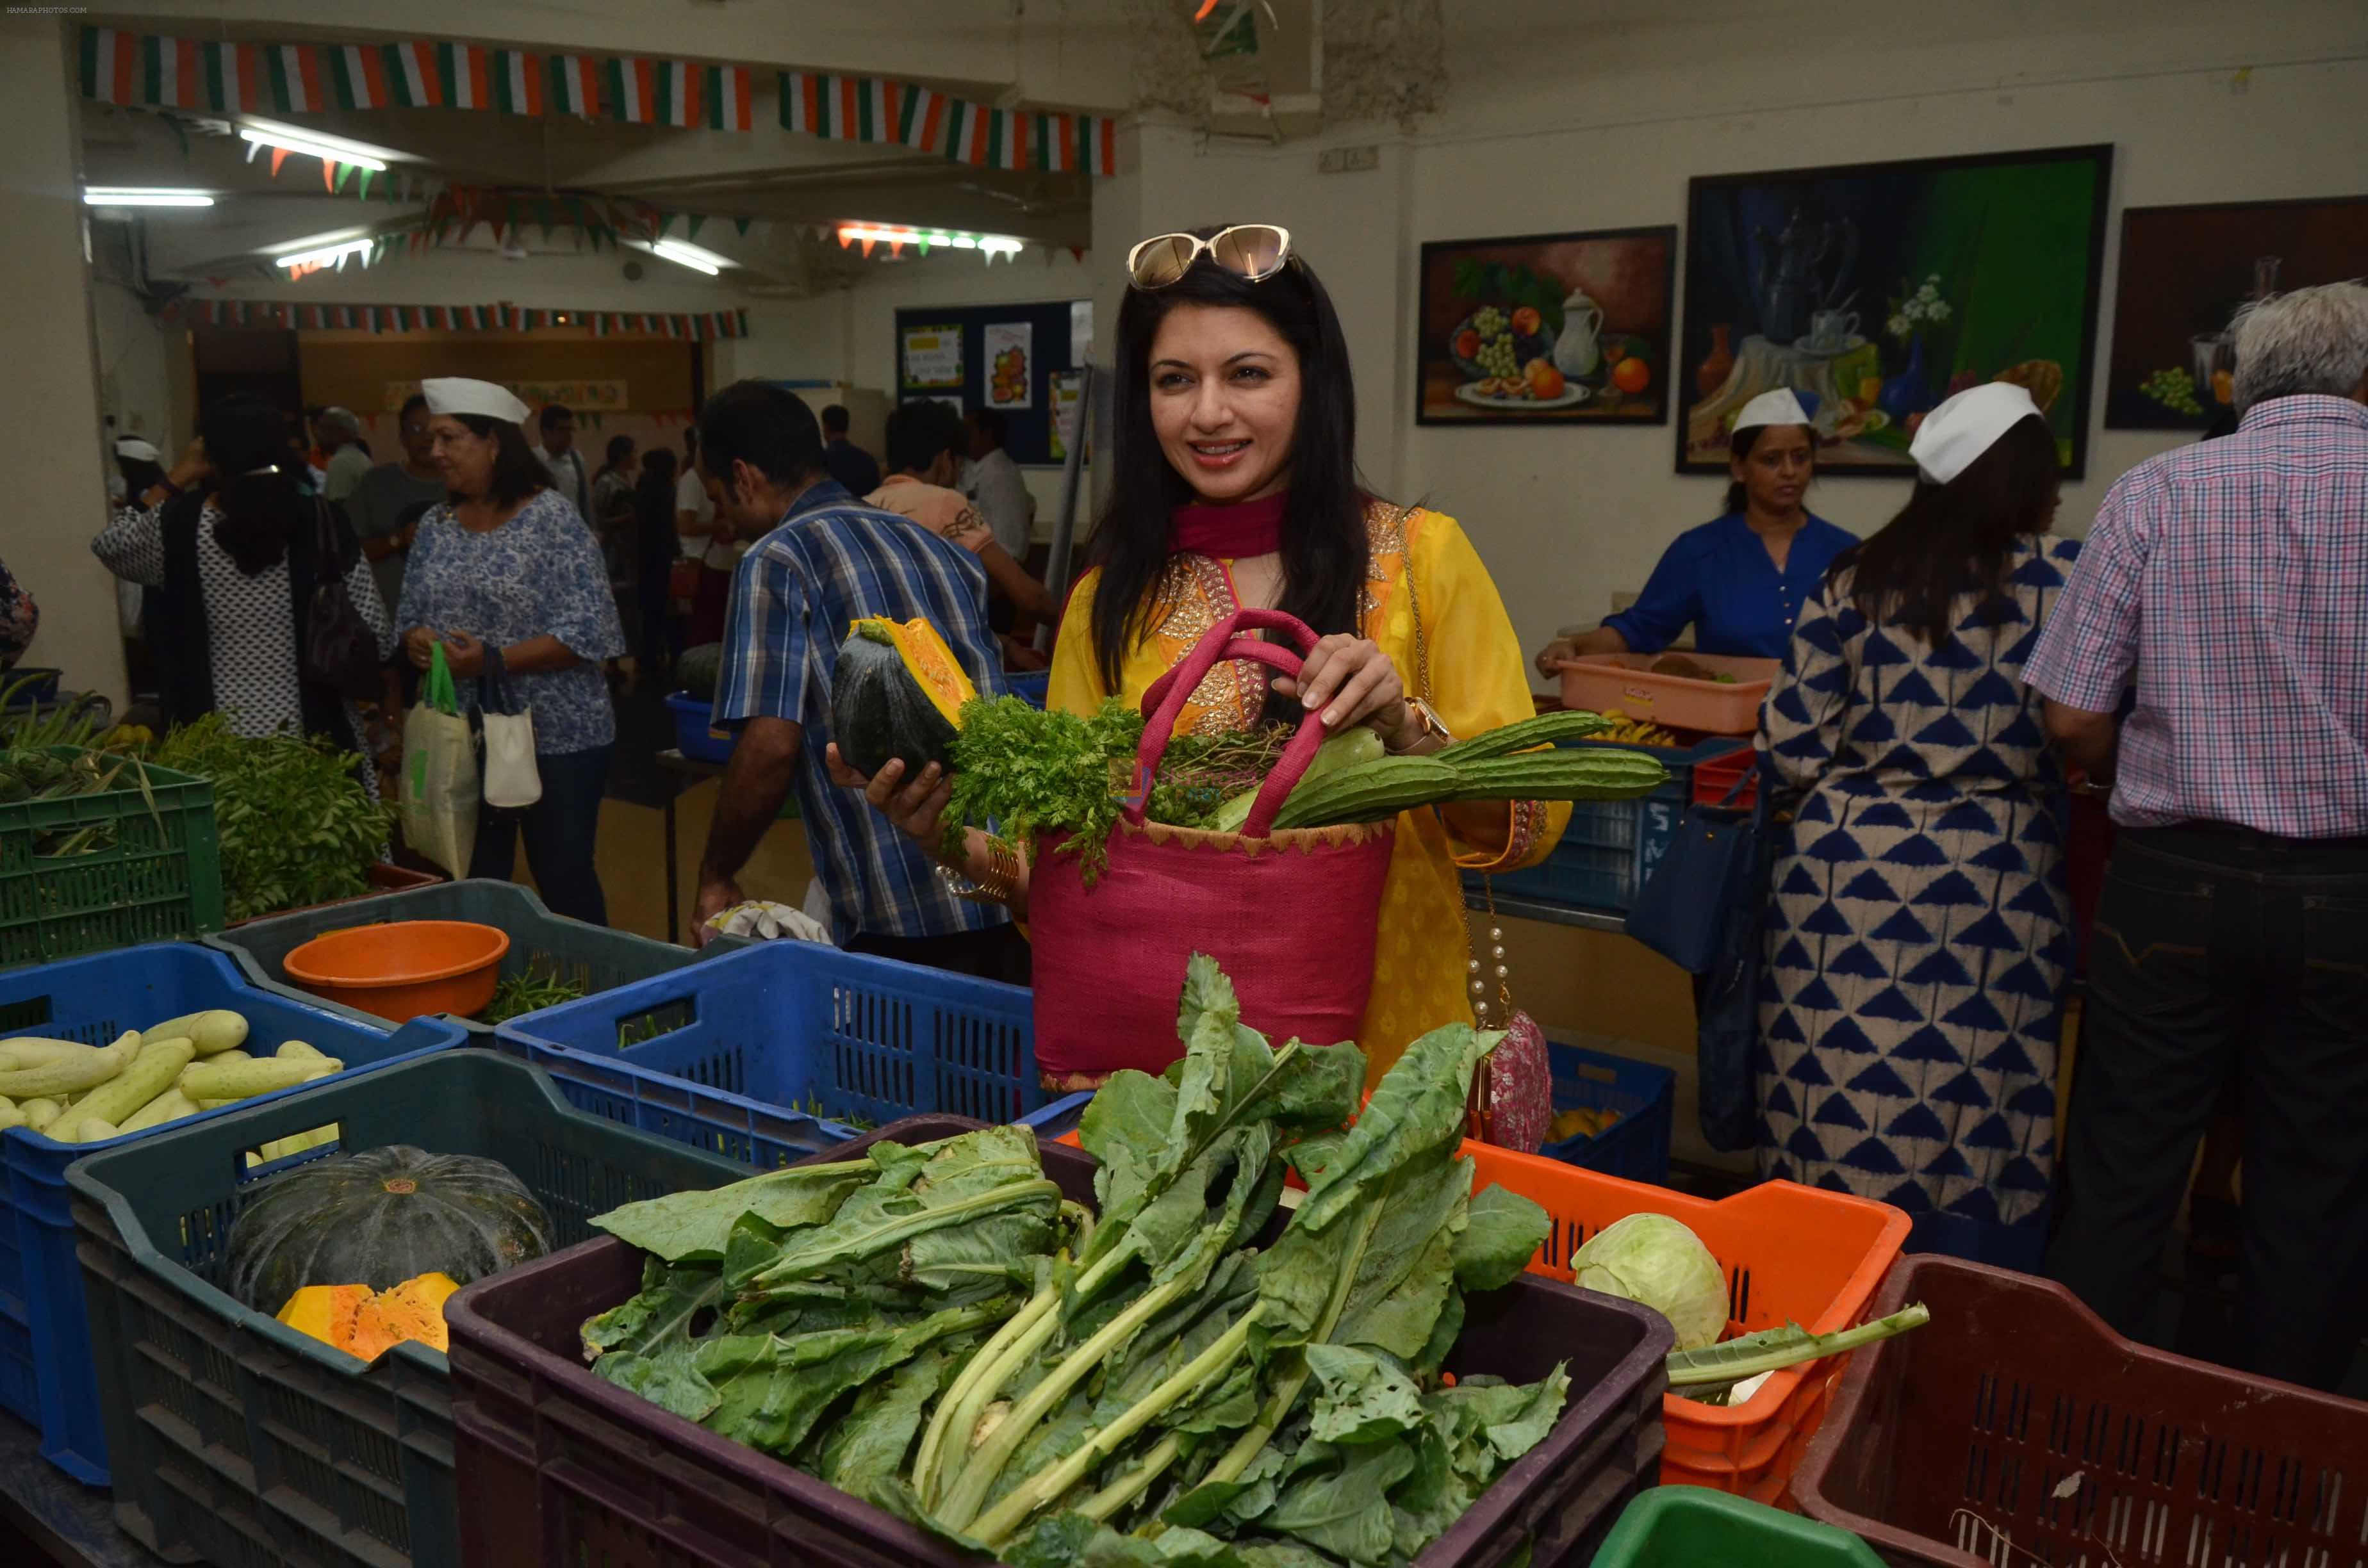 Bhagyashree inaugurated the Juhu Organic Farmer's Market on 14th Aug at Jamnabai Narsee School